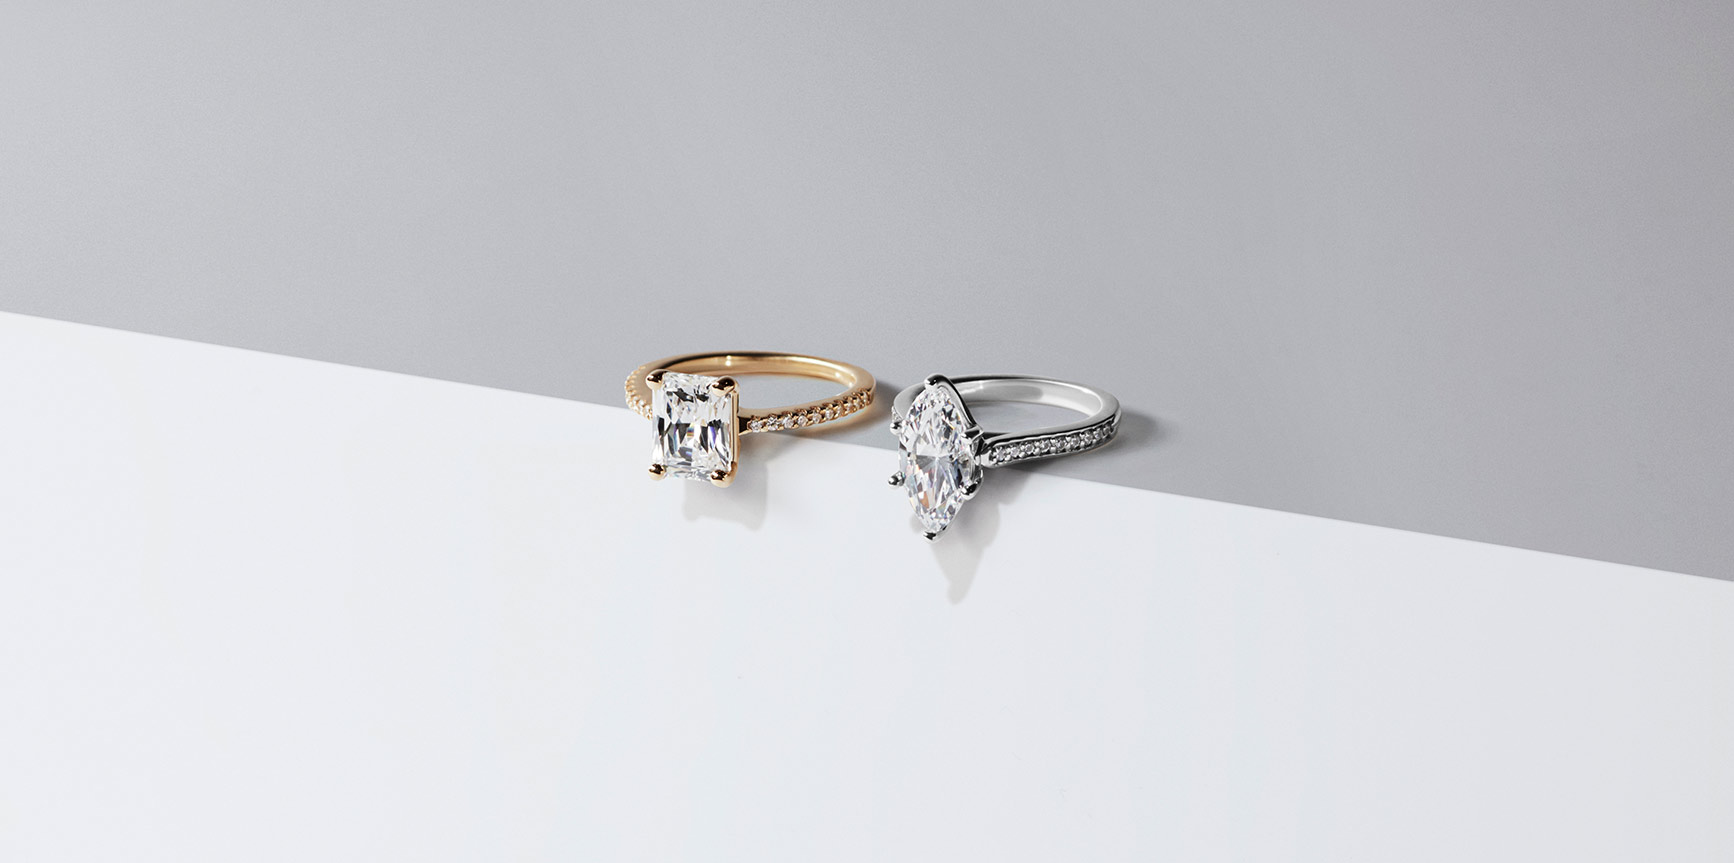 Two accented solitaire engagement rings set with Nexus Diamond™ alternatives.